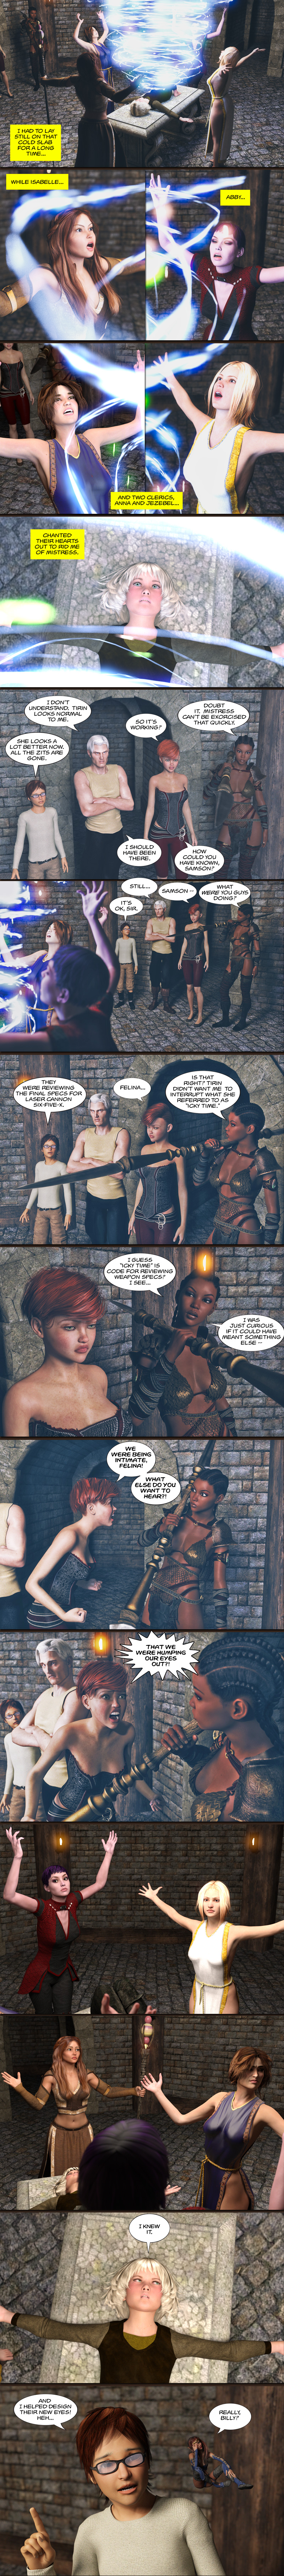 Chapter 17, page 33 – Exorcism interruptus